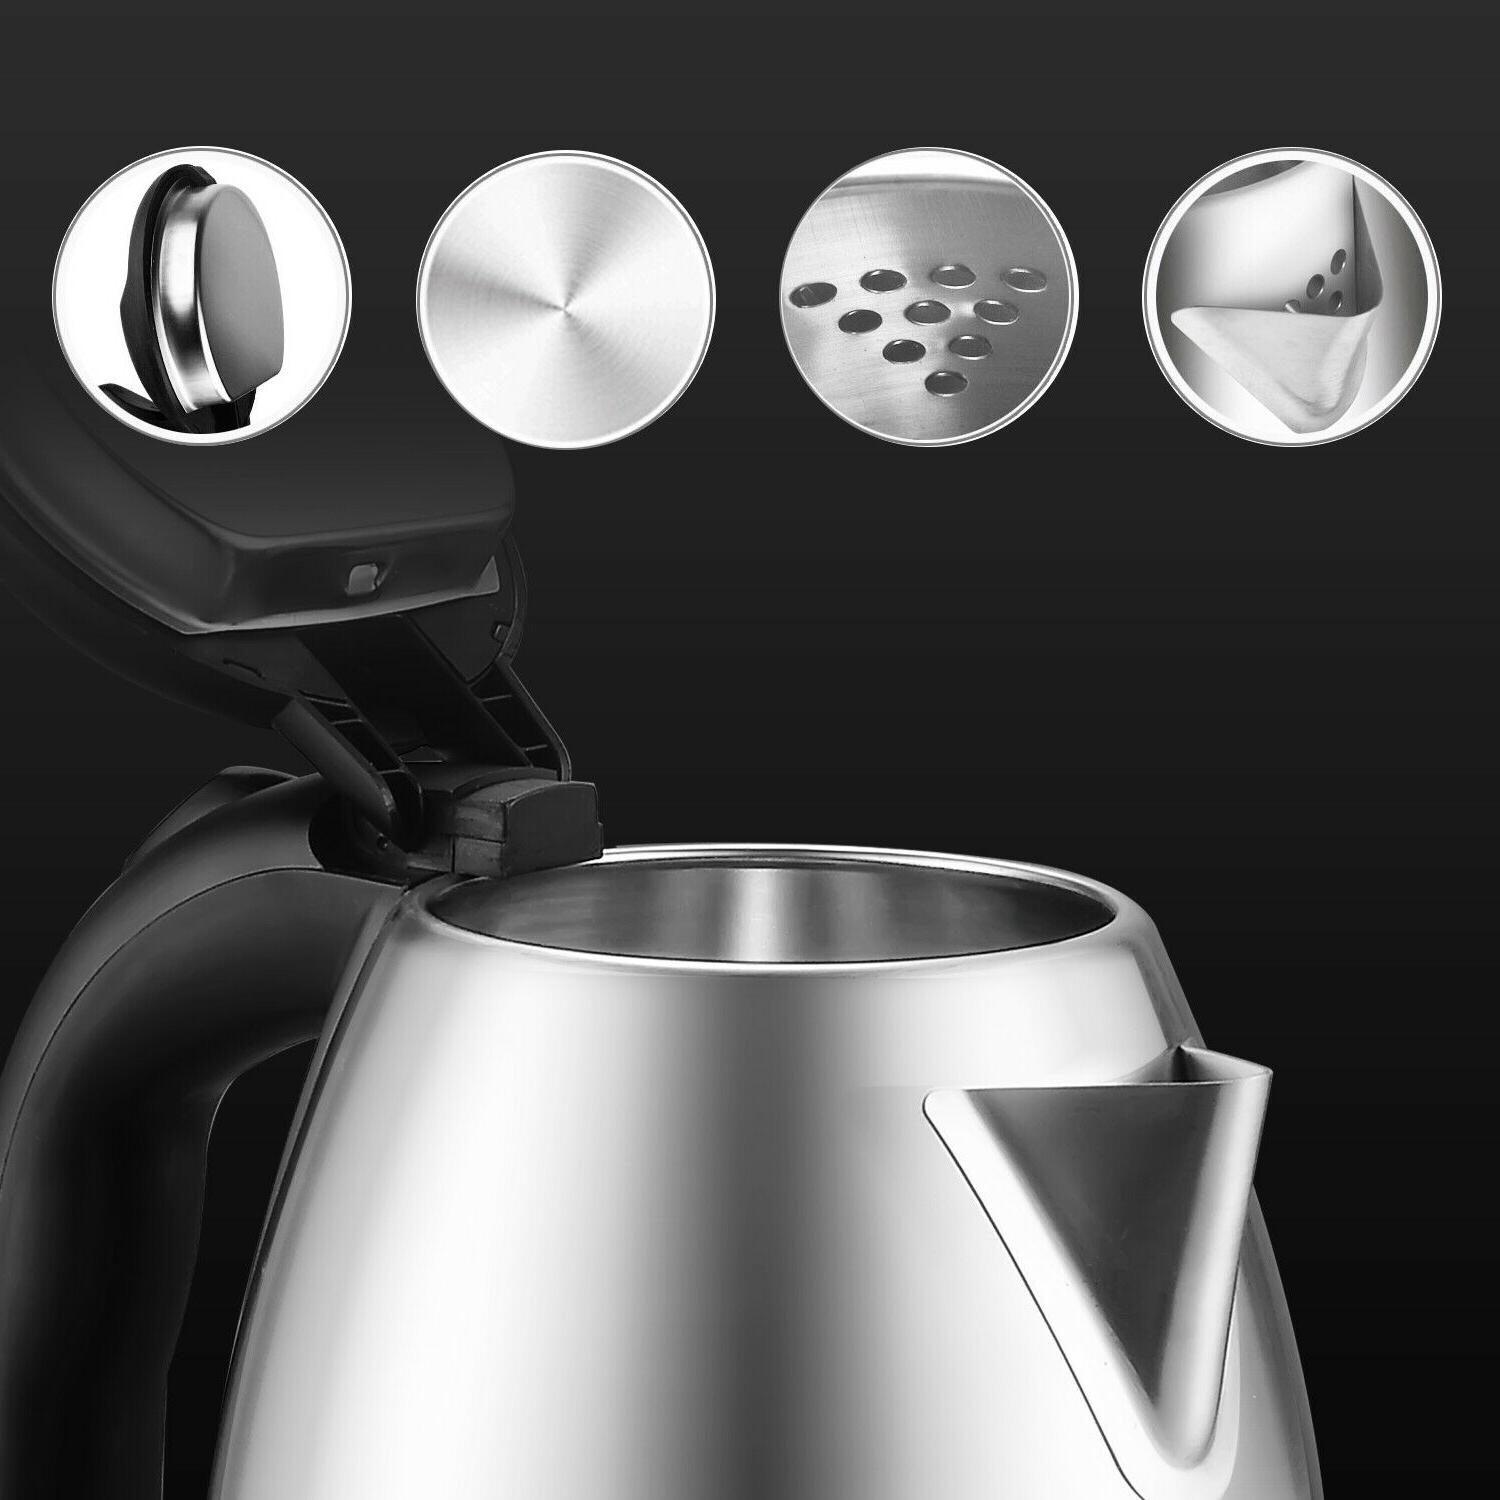 Dezin Electric Stainless Steel Water with Tech